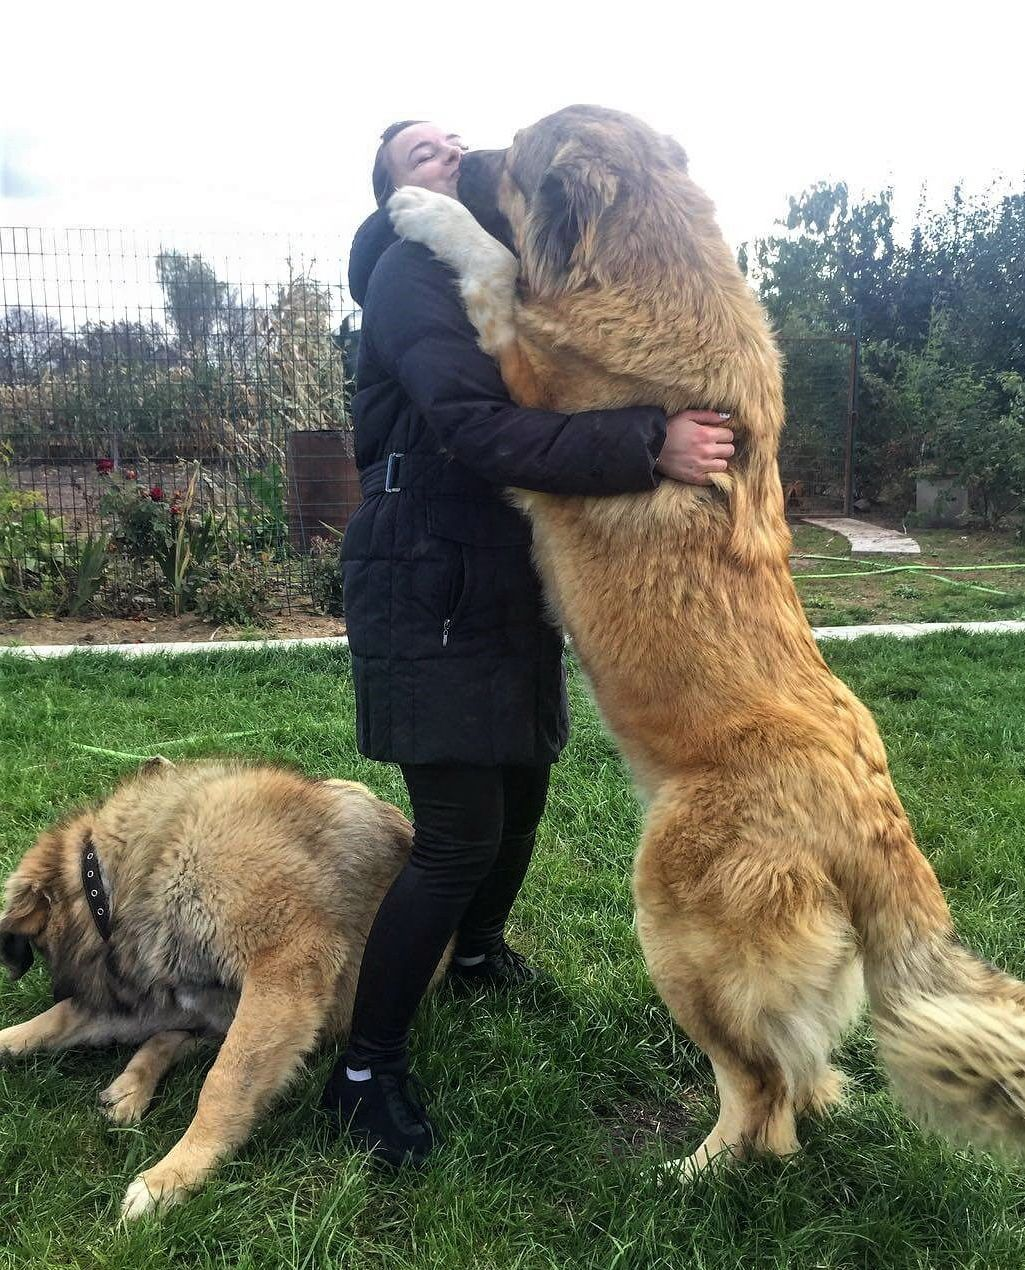 Caucasian Mountain Shepherd For Sale >> How Much Would Caucasian Mountain Dog Cost Puppy Price